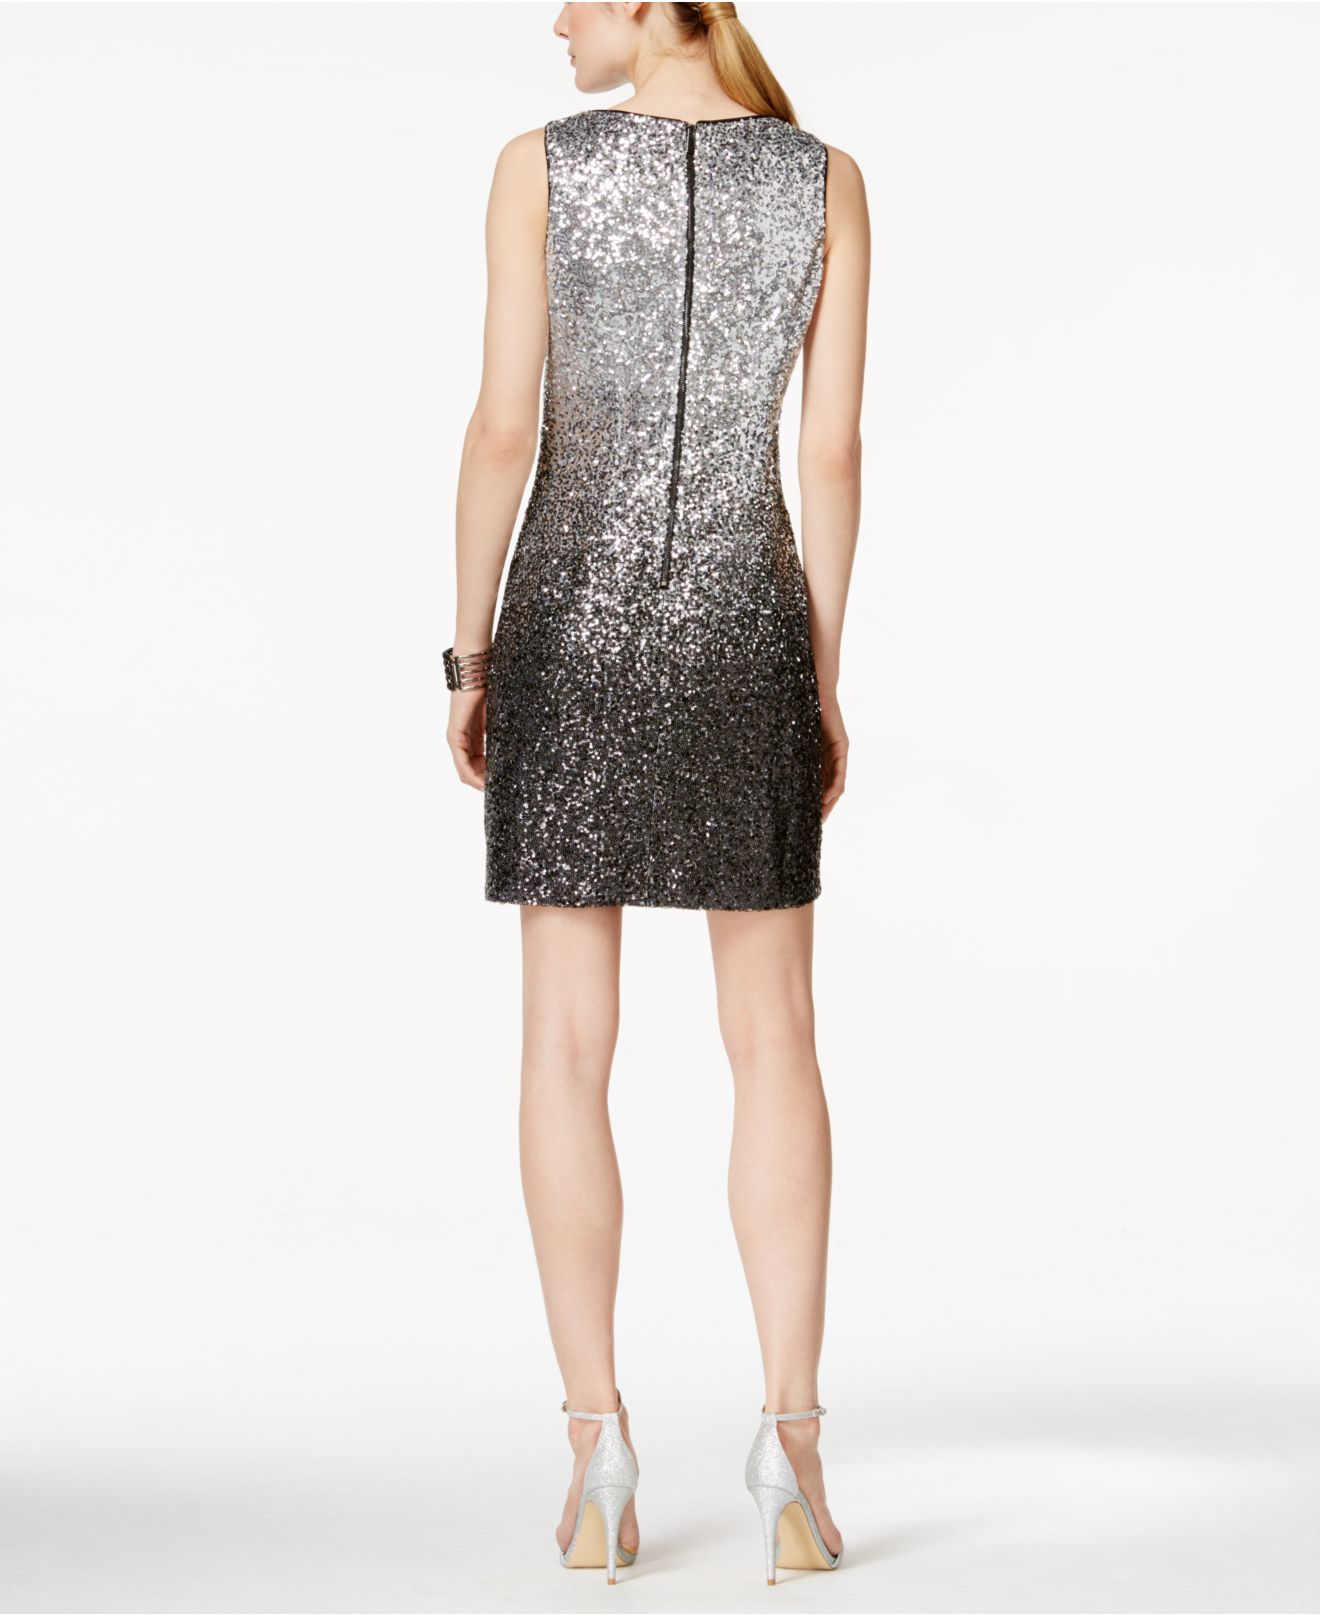 44914d42 Vince Camuto Sequined Ombré Sheath Dress in Metallic - Lyst